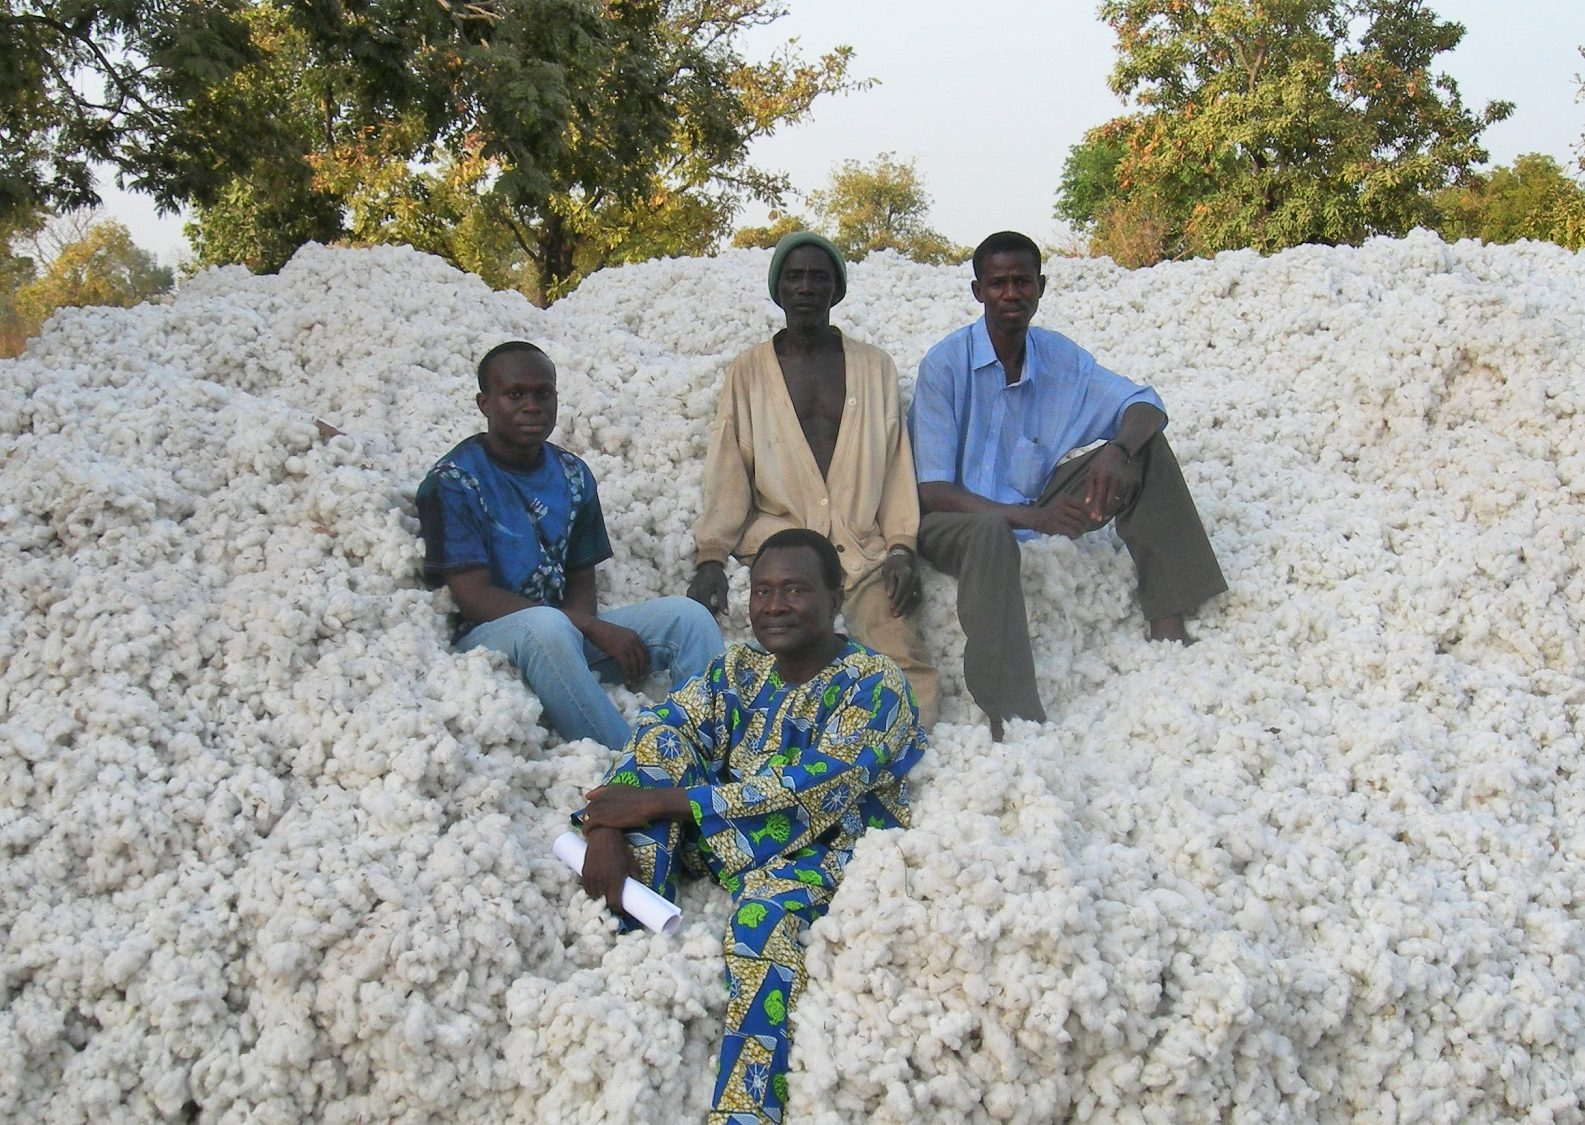 A cotton market in Benin, West Africa